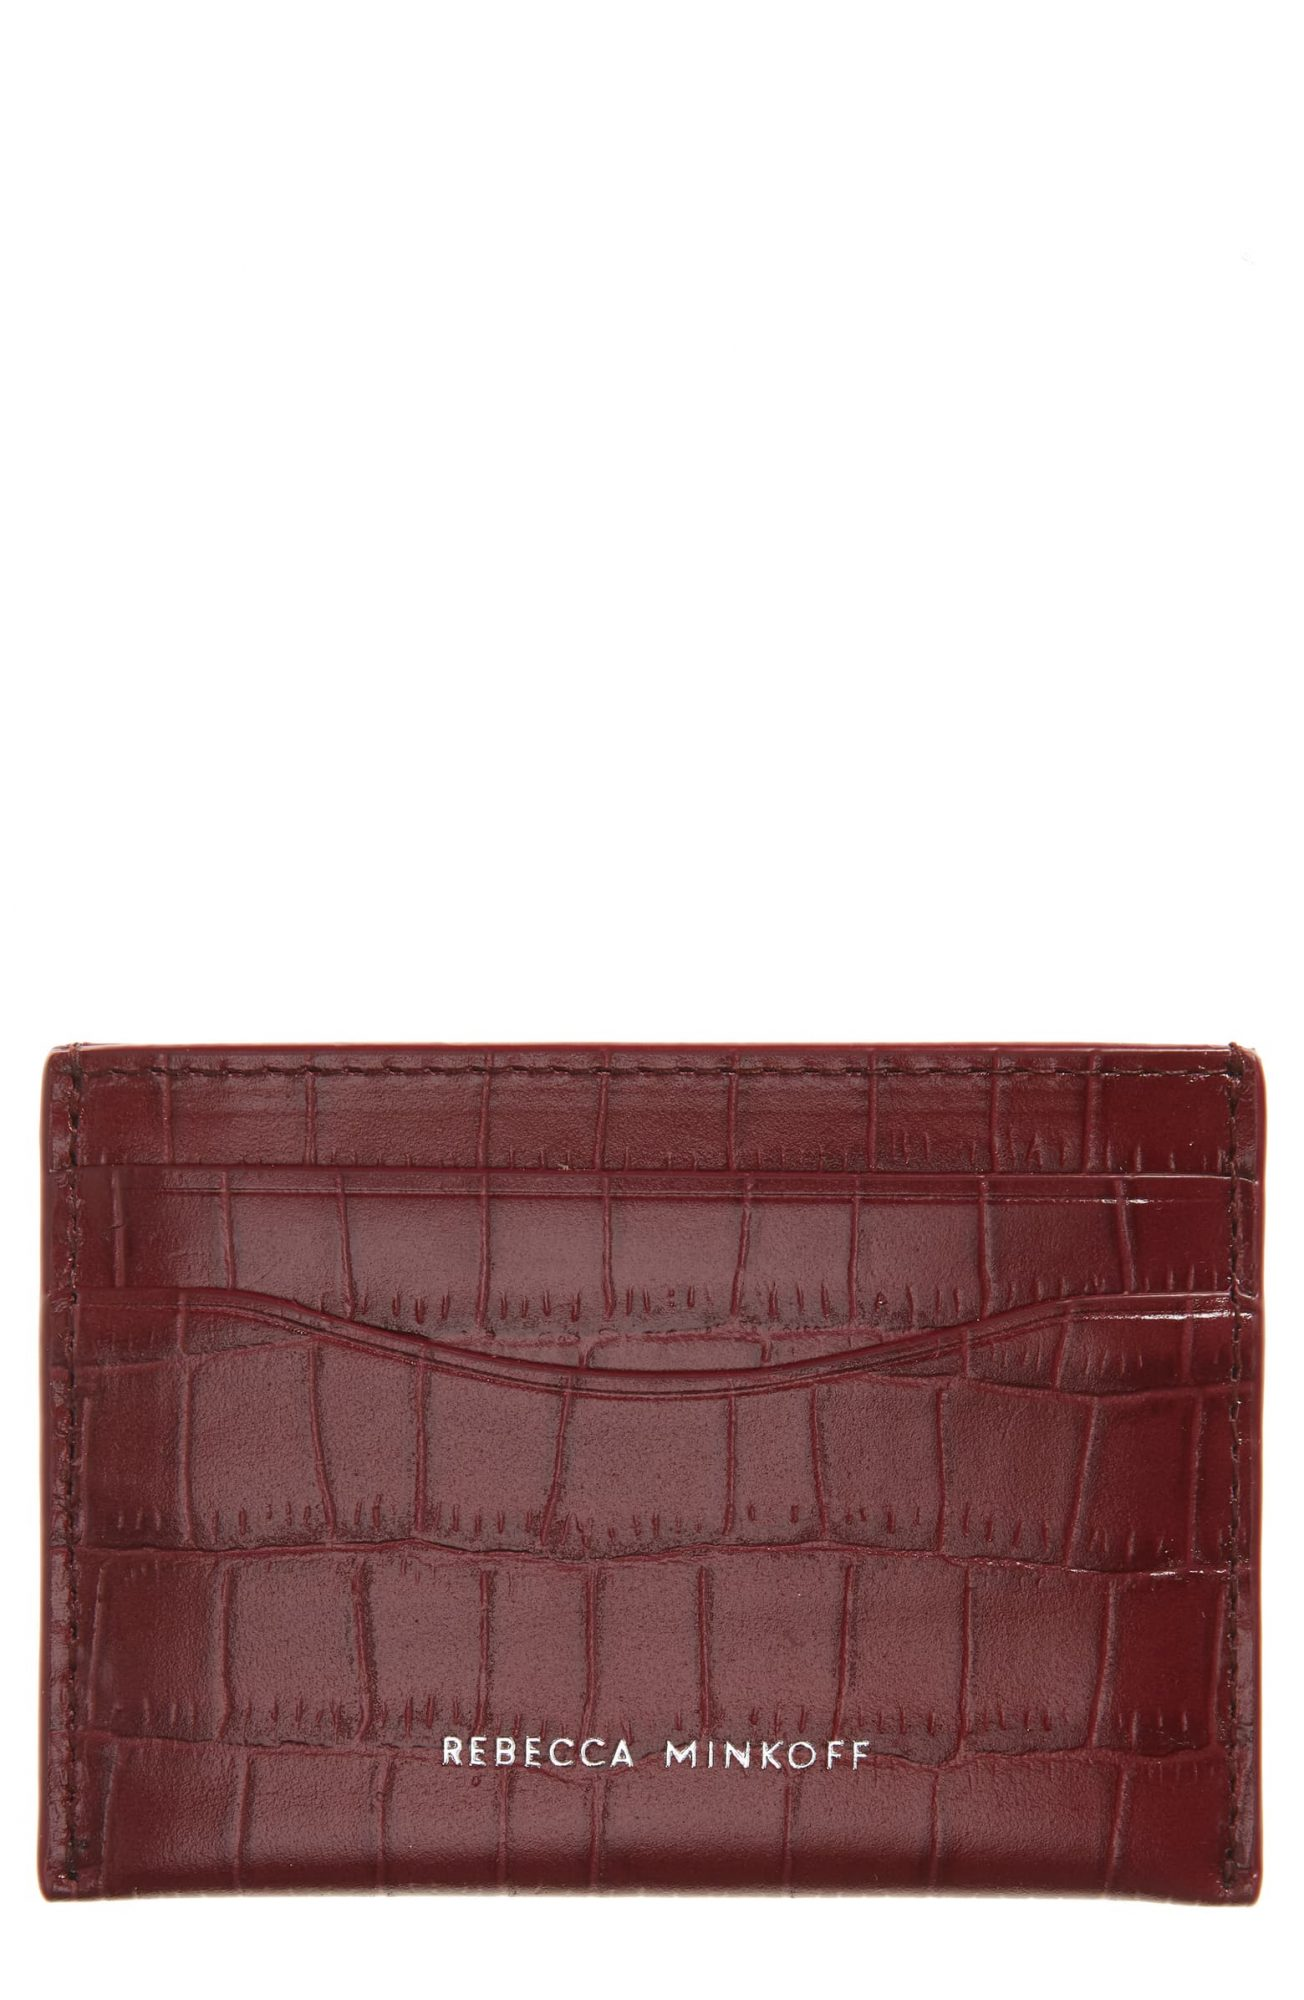 Gift Ideas for Girlfriend: Rebecca Minkoff Croc Embossed Leather Card Case